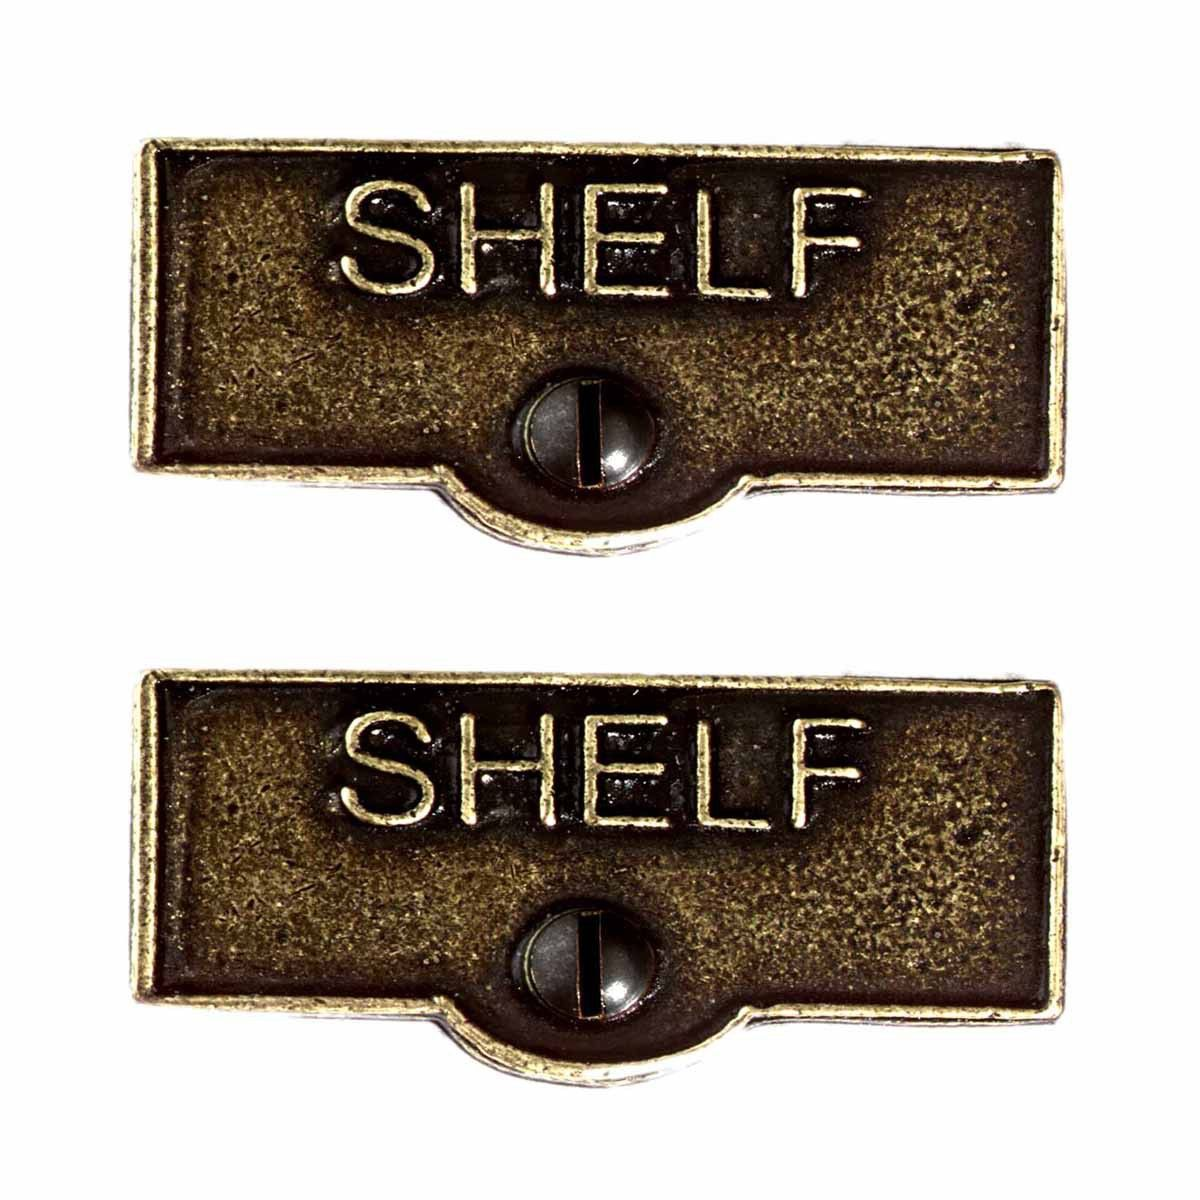 2 Switchplate Antique Solid Brass Shelf Shelf Switch Tag Antique Brass 1 Switch Plates Bottle Opener Wall Name Signs